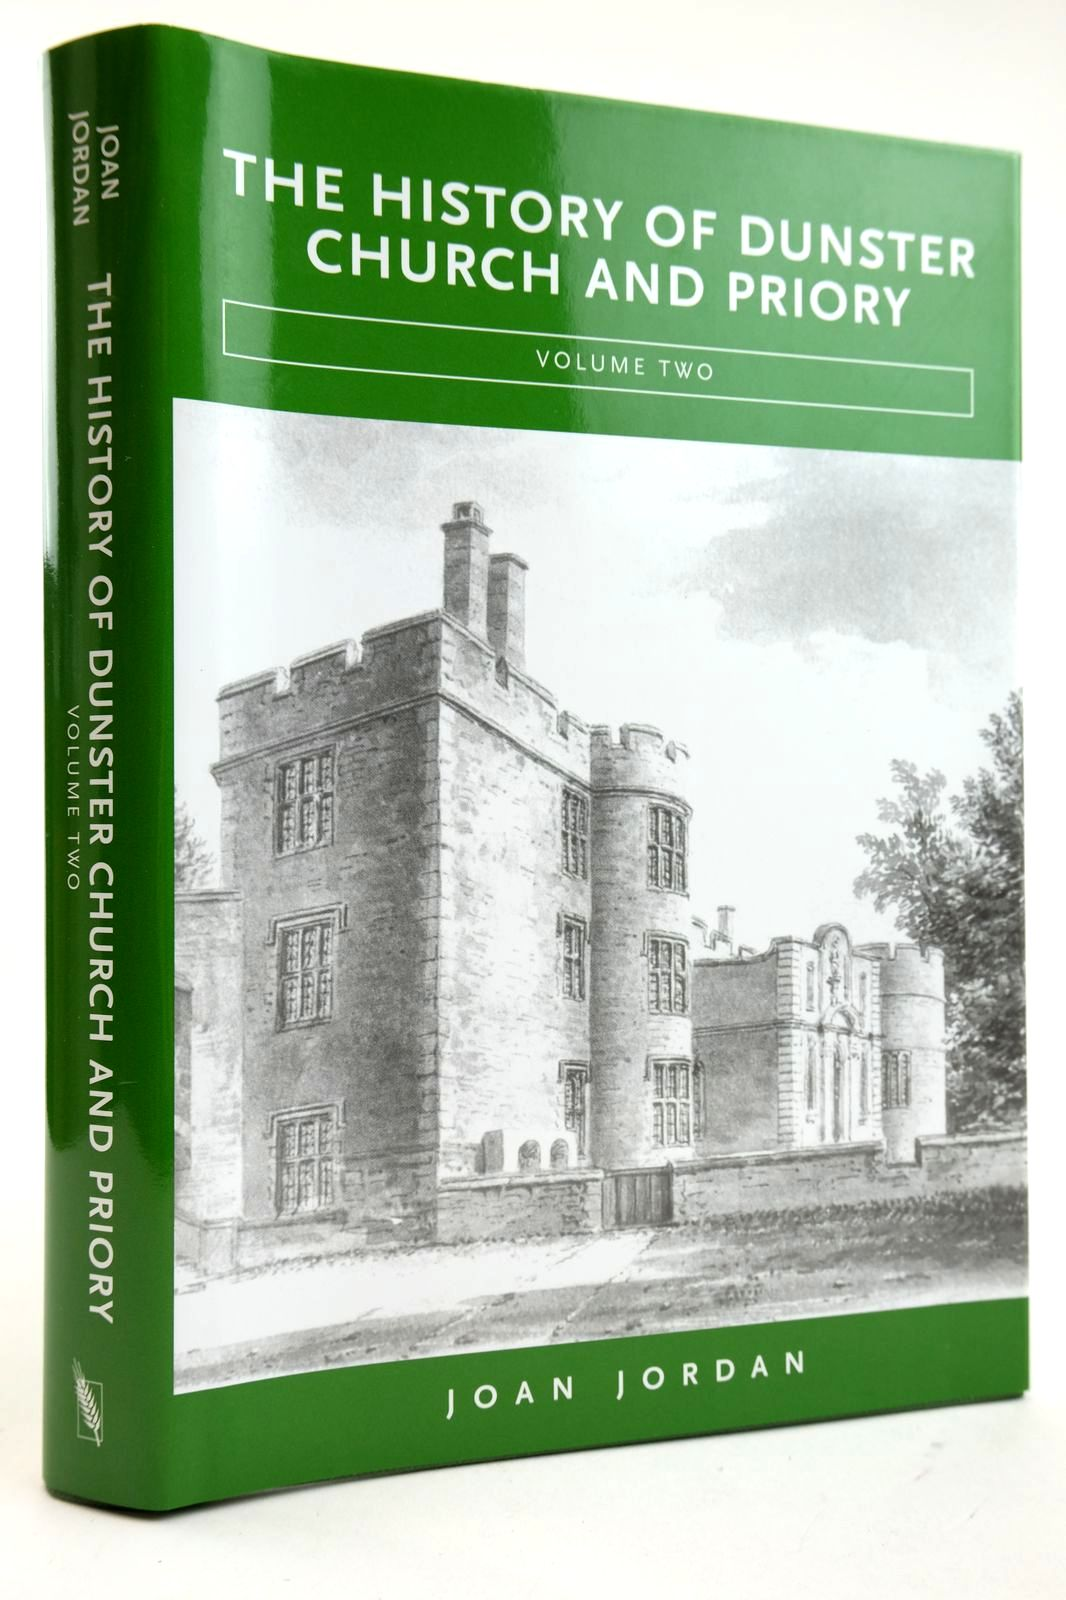 Photo of THE HISTORY OF DUNSTER CHURCH AND PRIORY VOLUME TWO- Stock Number: 2132602